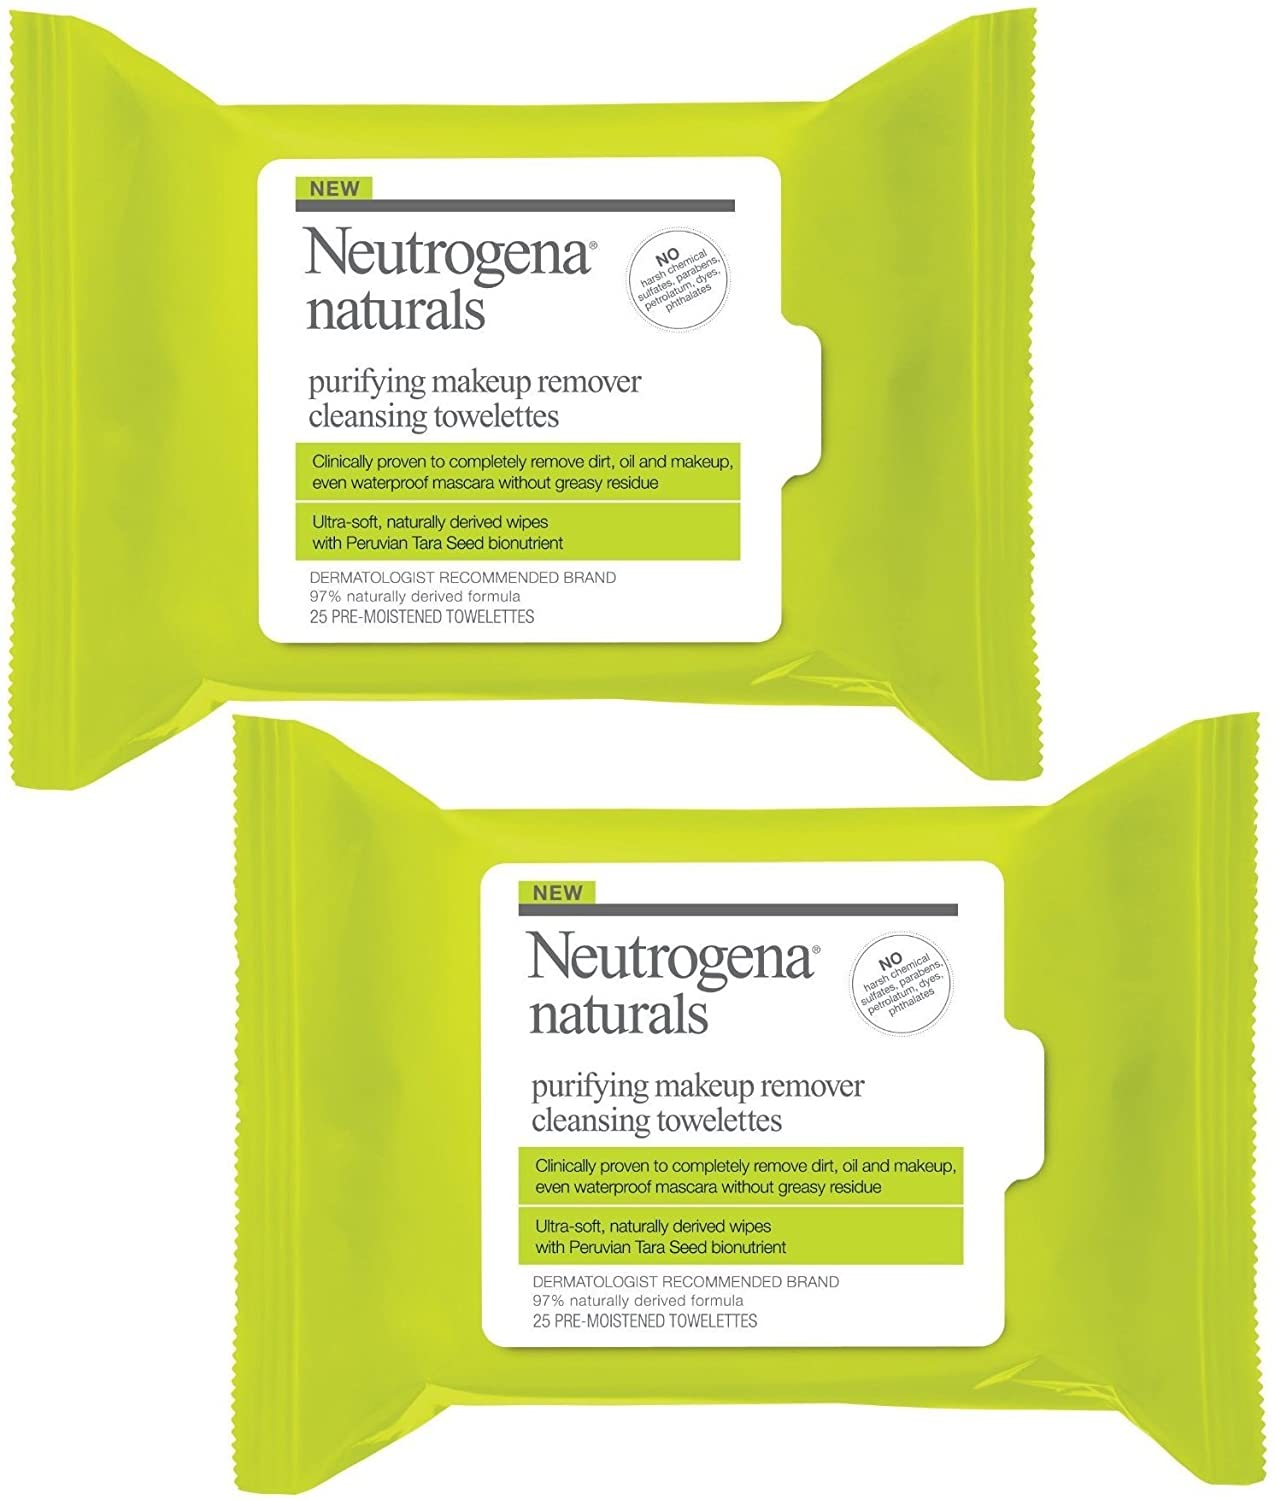 Naturals Purifying Makeup Remover Cleansing Towelettes by Neutrogena #17